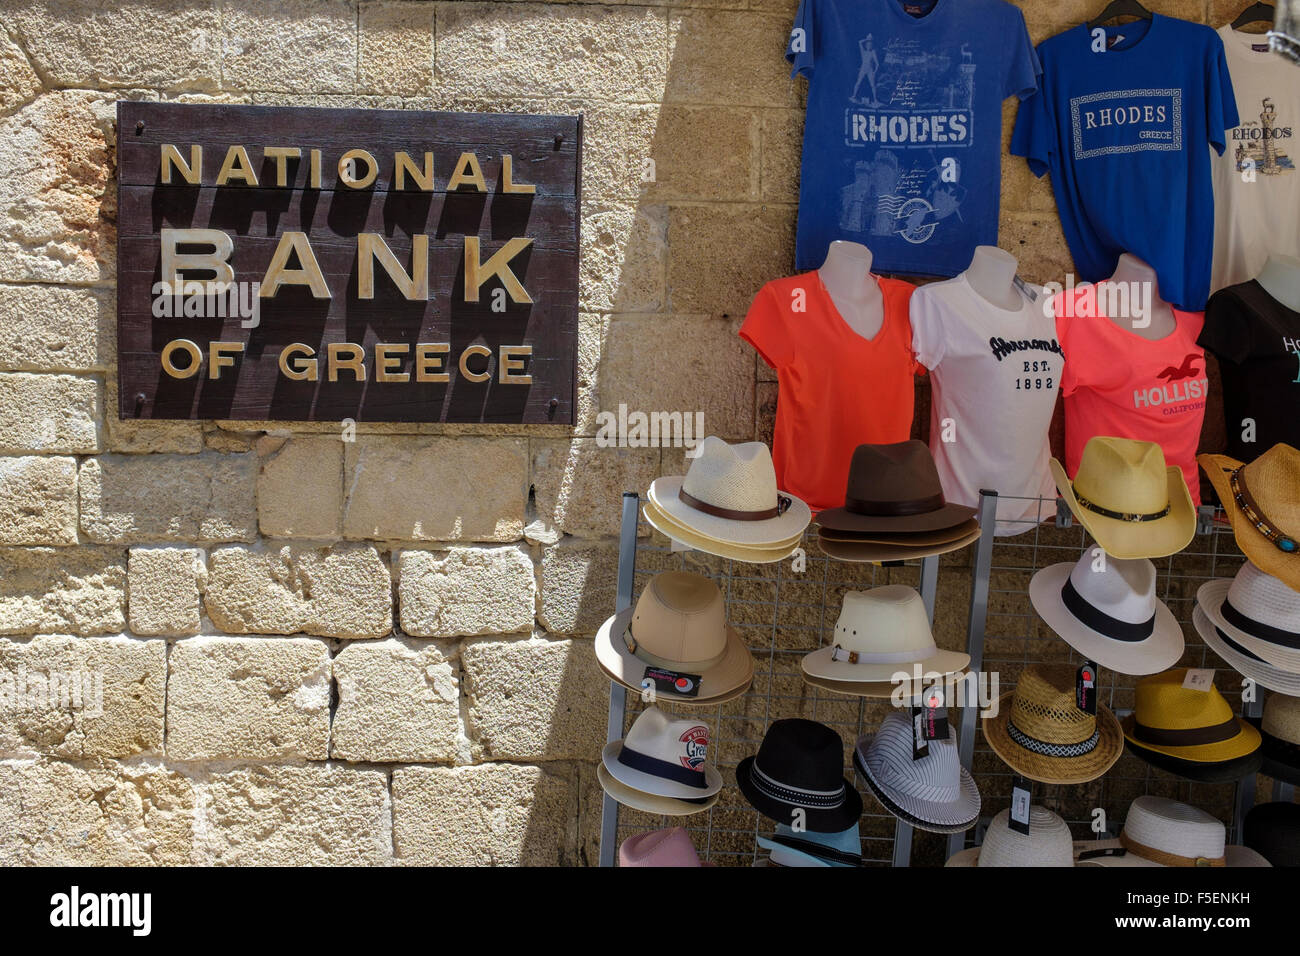 Sign for the National Bank of Greece beside a display of tourist merchandise on a wall in Rhodes Old Town, Greece. - Stock Image